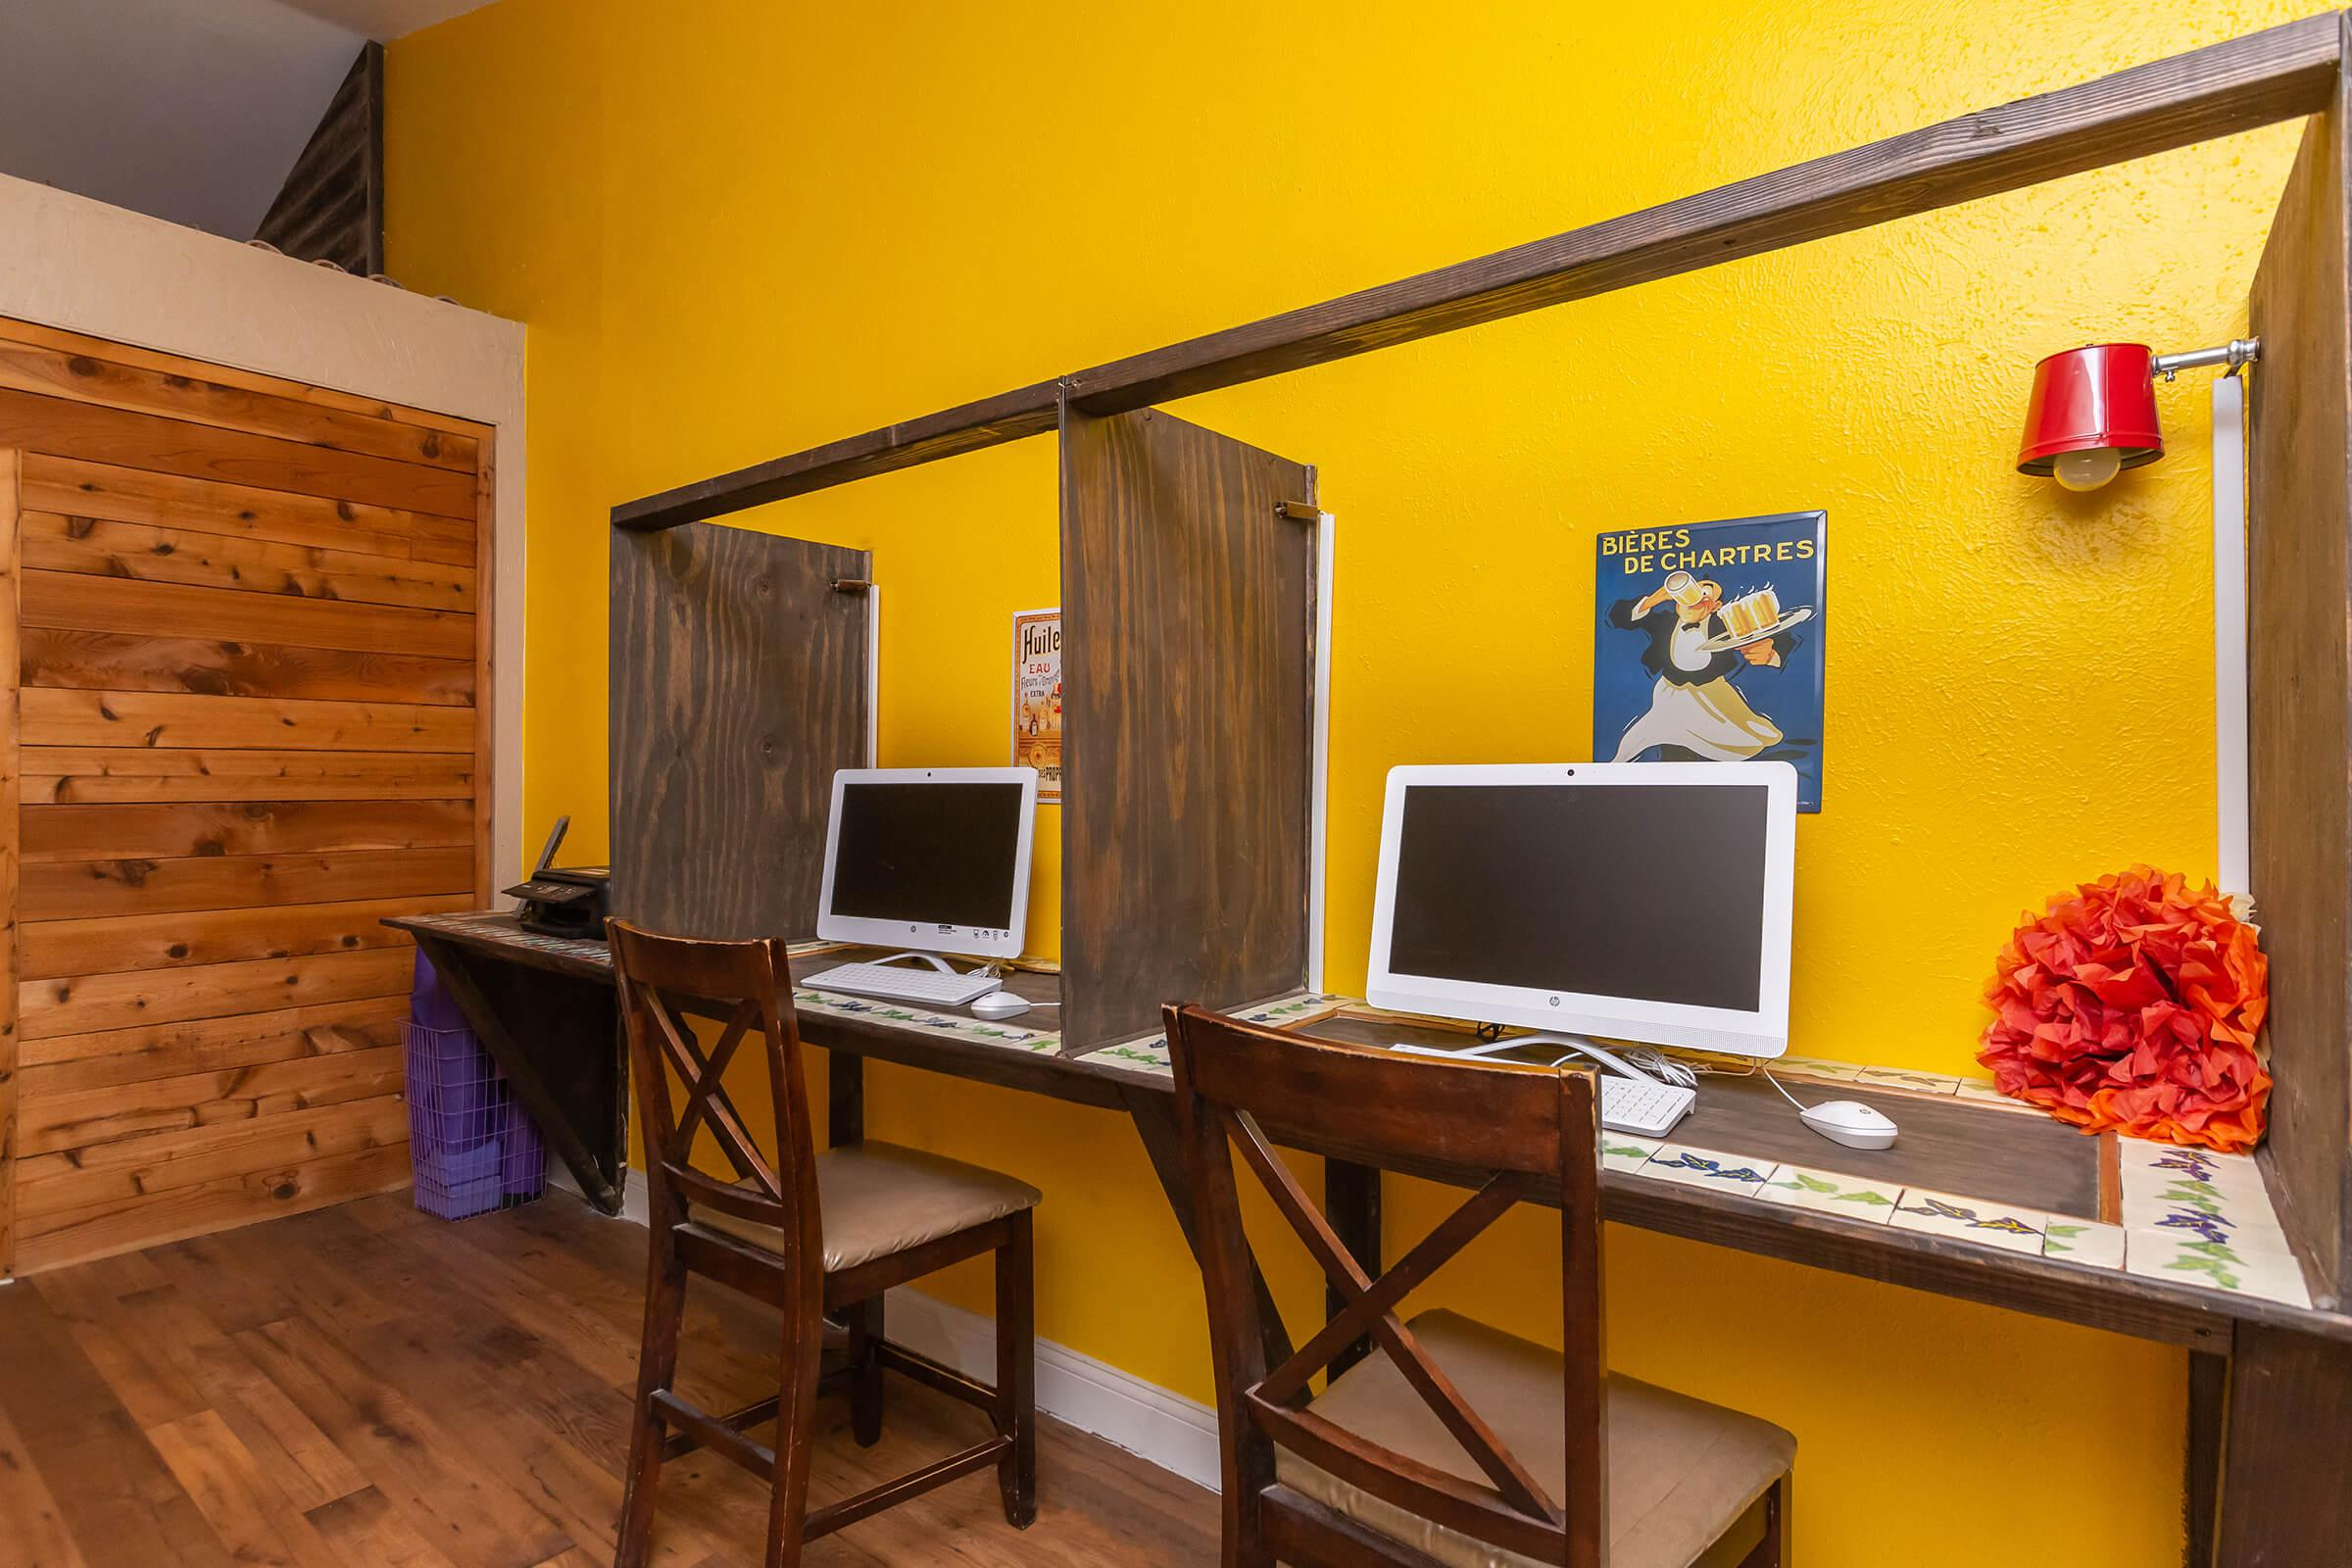 a dining room table in front of a computer